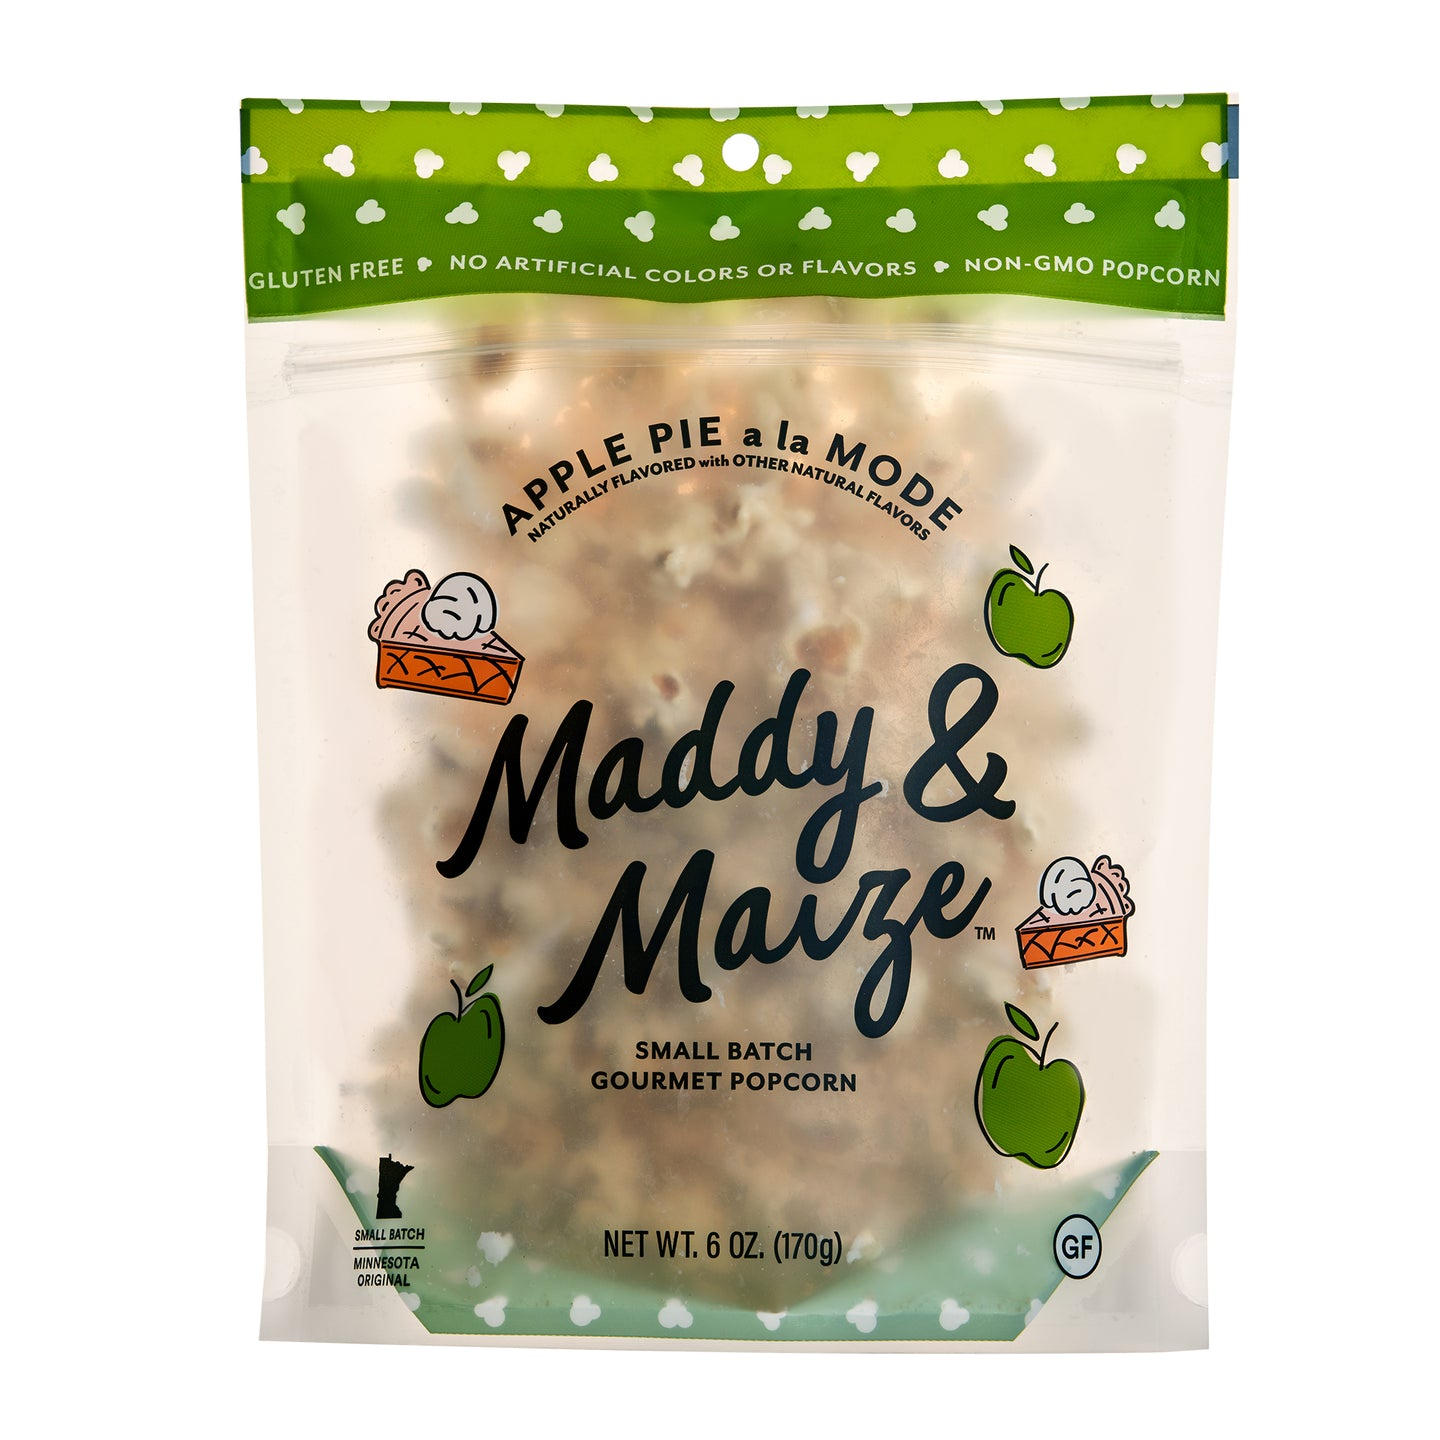 One 6 ounce bag of Maddy & Maize Apple Pie a la Mode popcorn, front facing. Translucent package showcasing apple pie seasoned kettle corn with white chocolate drizzle. Package has green accent color and drawings of apples and apple pie.